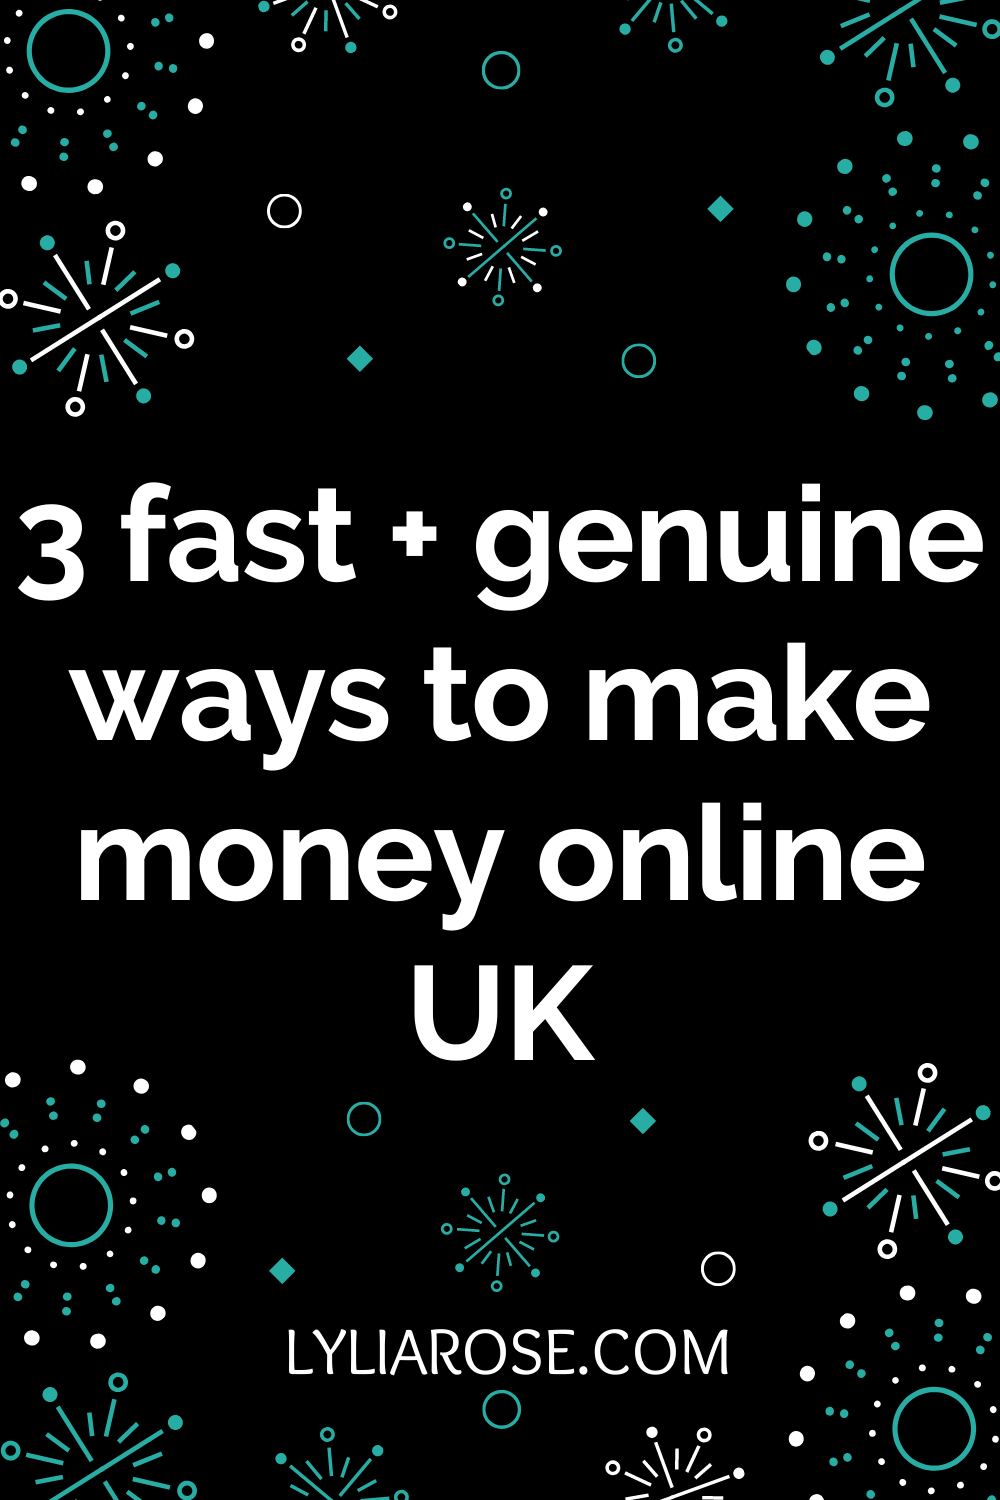 3 fast + genuine ways to make money online UK (3)